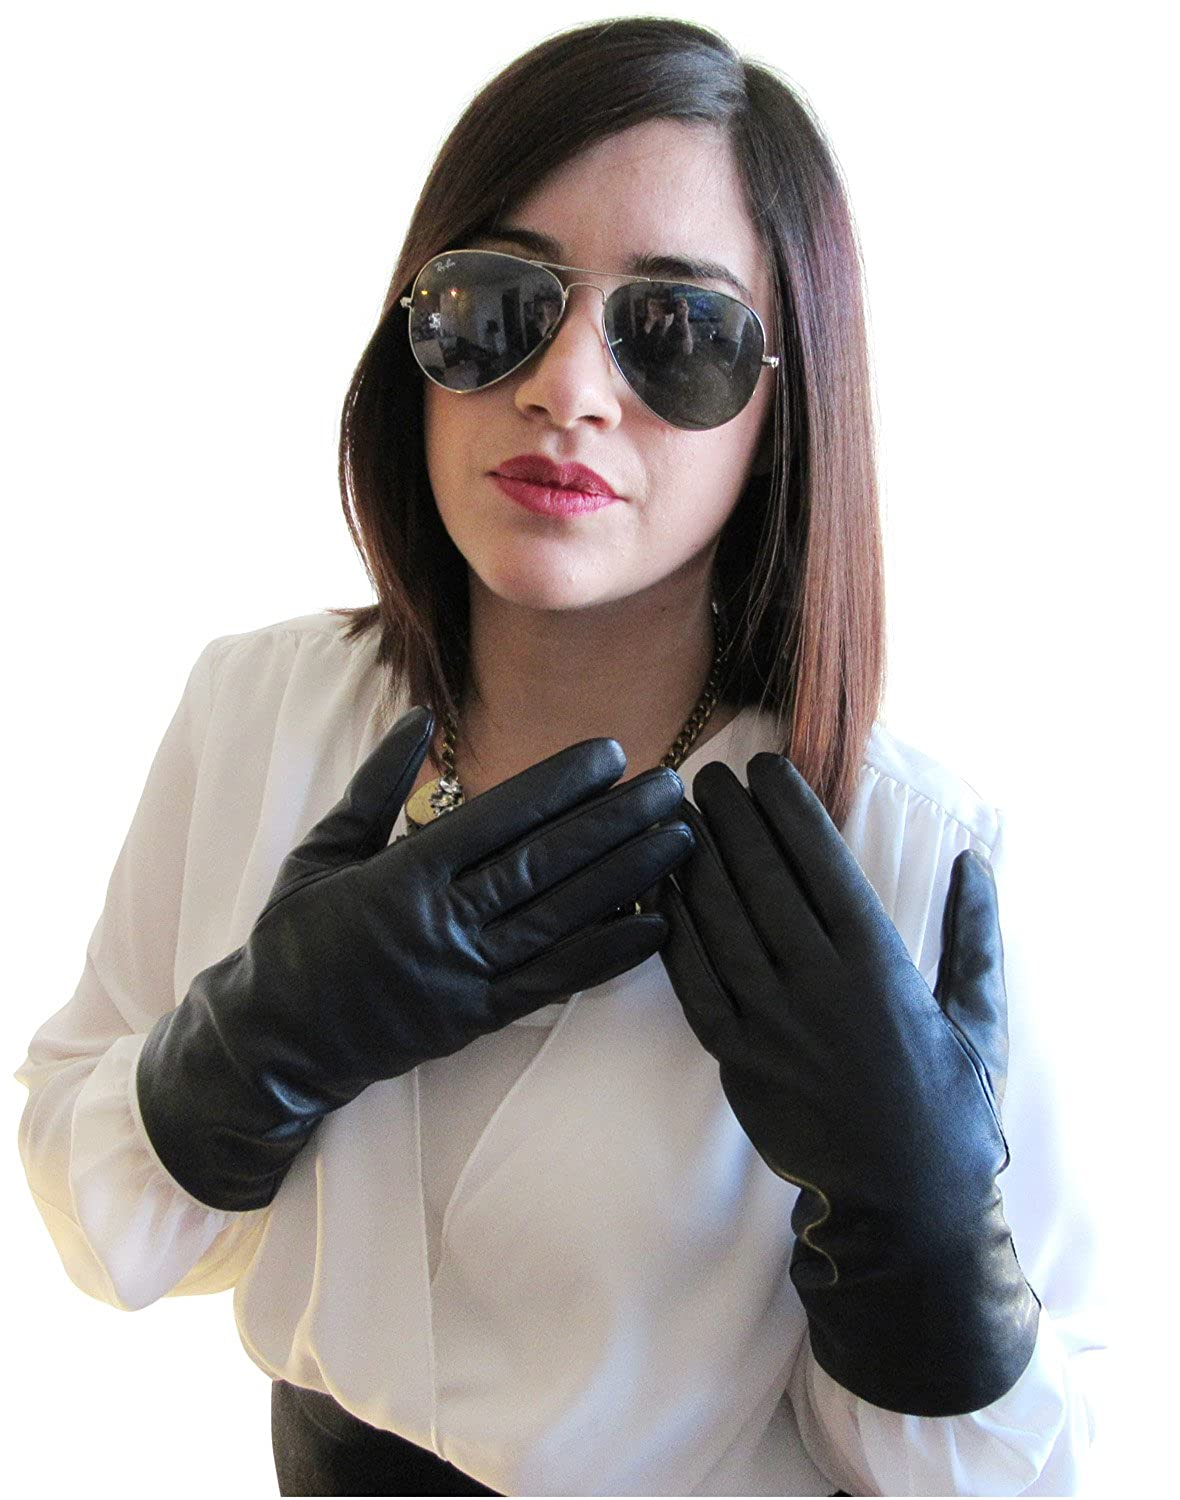 Womens leather gloves purple - Fownes Women S Cashmere Lined Smart Black Lambskin Leather Gloves 6 Xs At Amazon Women S Clothing Store